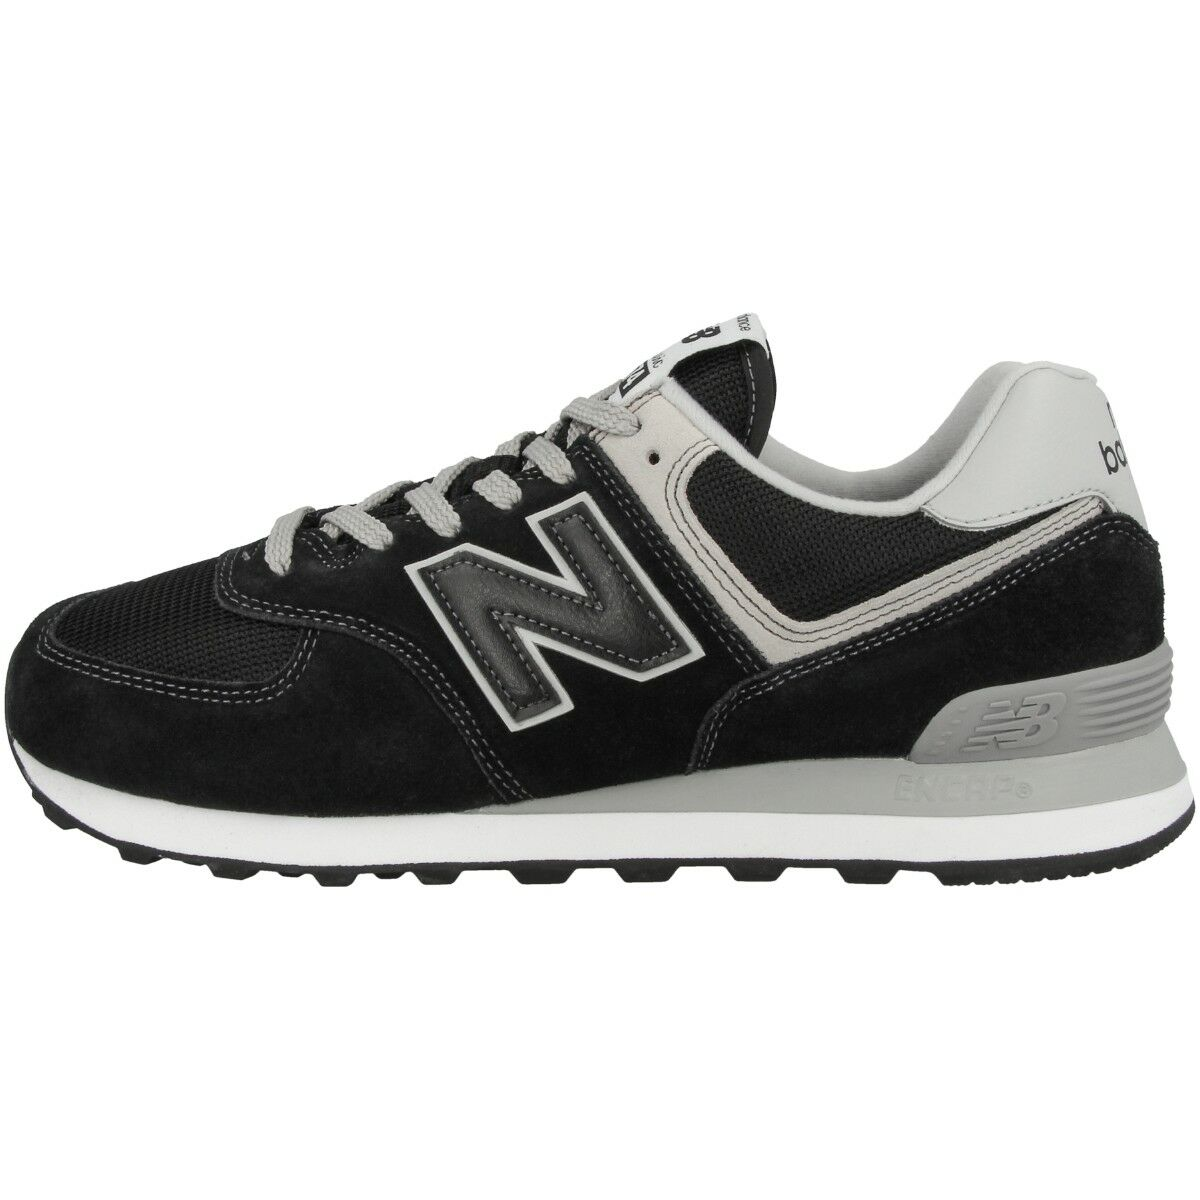 New Balance ML 574 EGK Sneaker Schuhe Essential Freizeit Sport Sneaker EGK black ML574EGK 9686b5